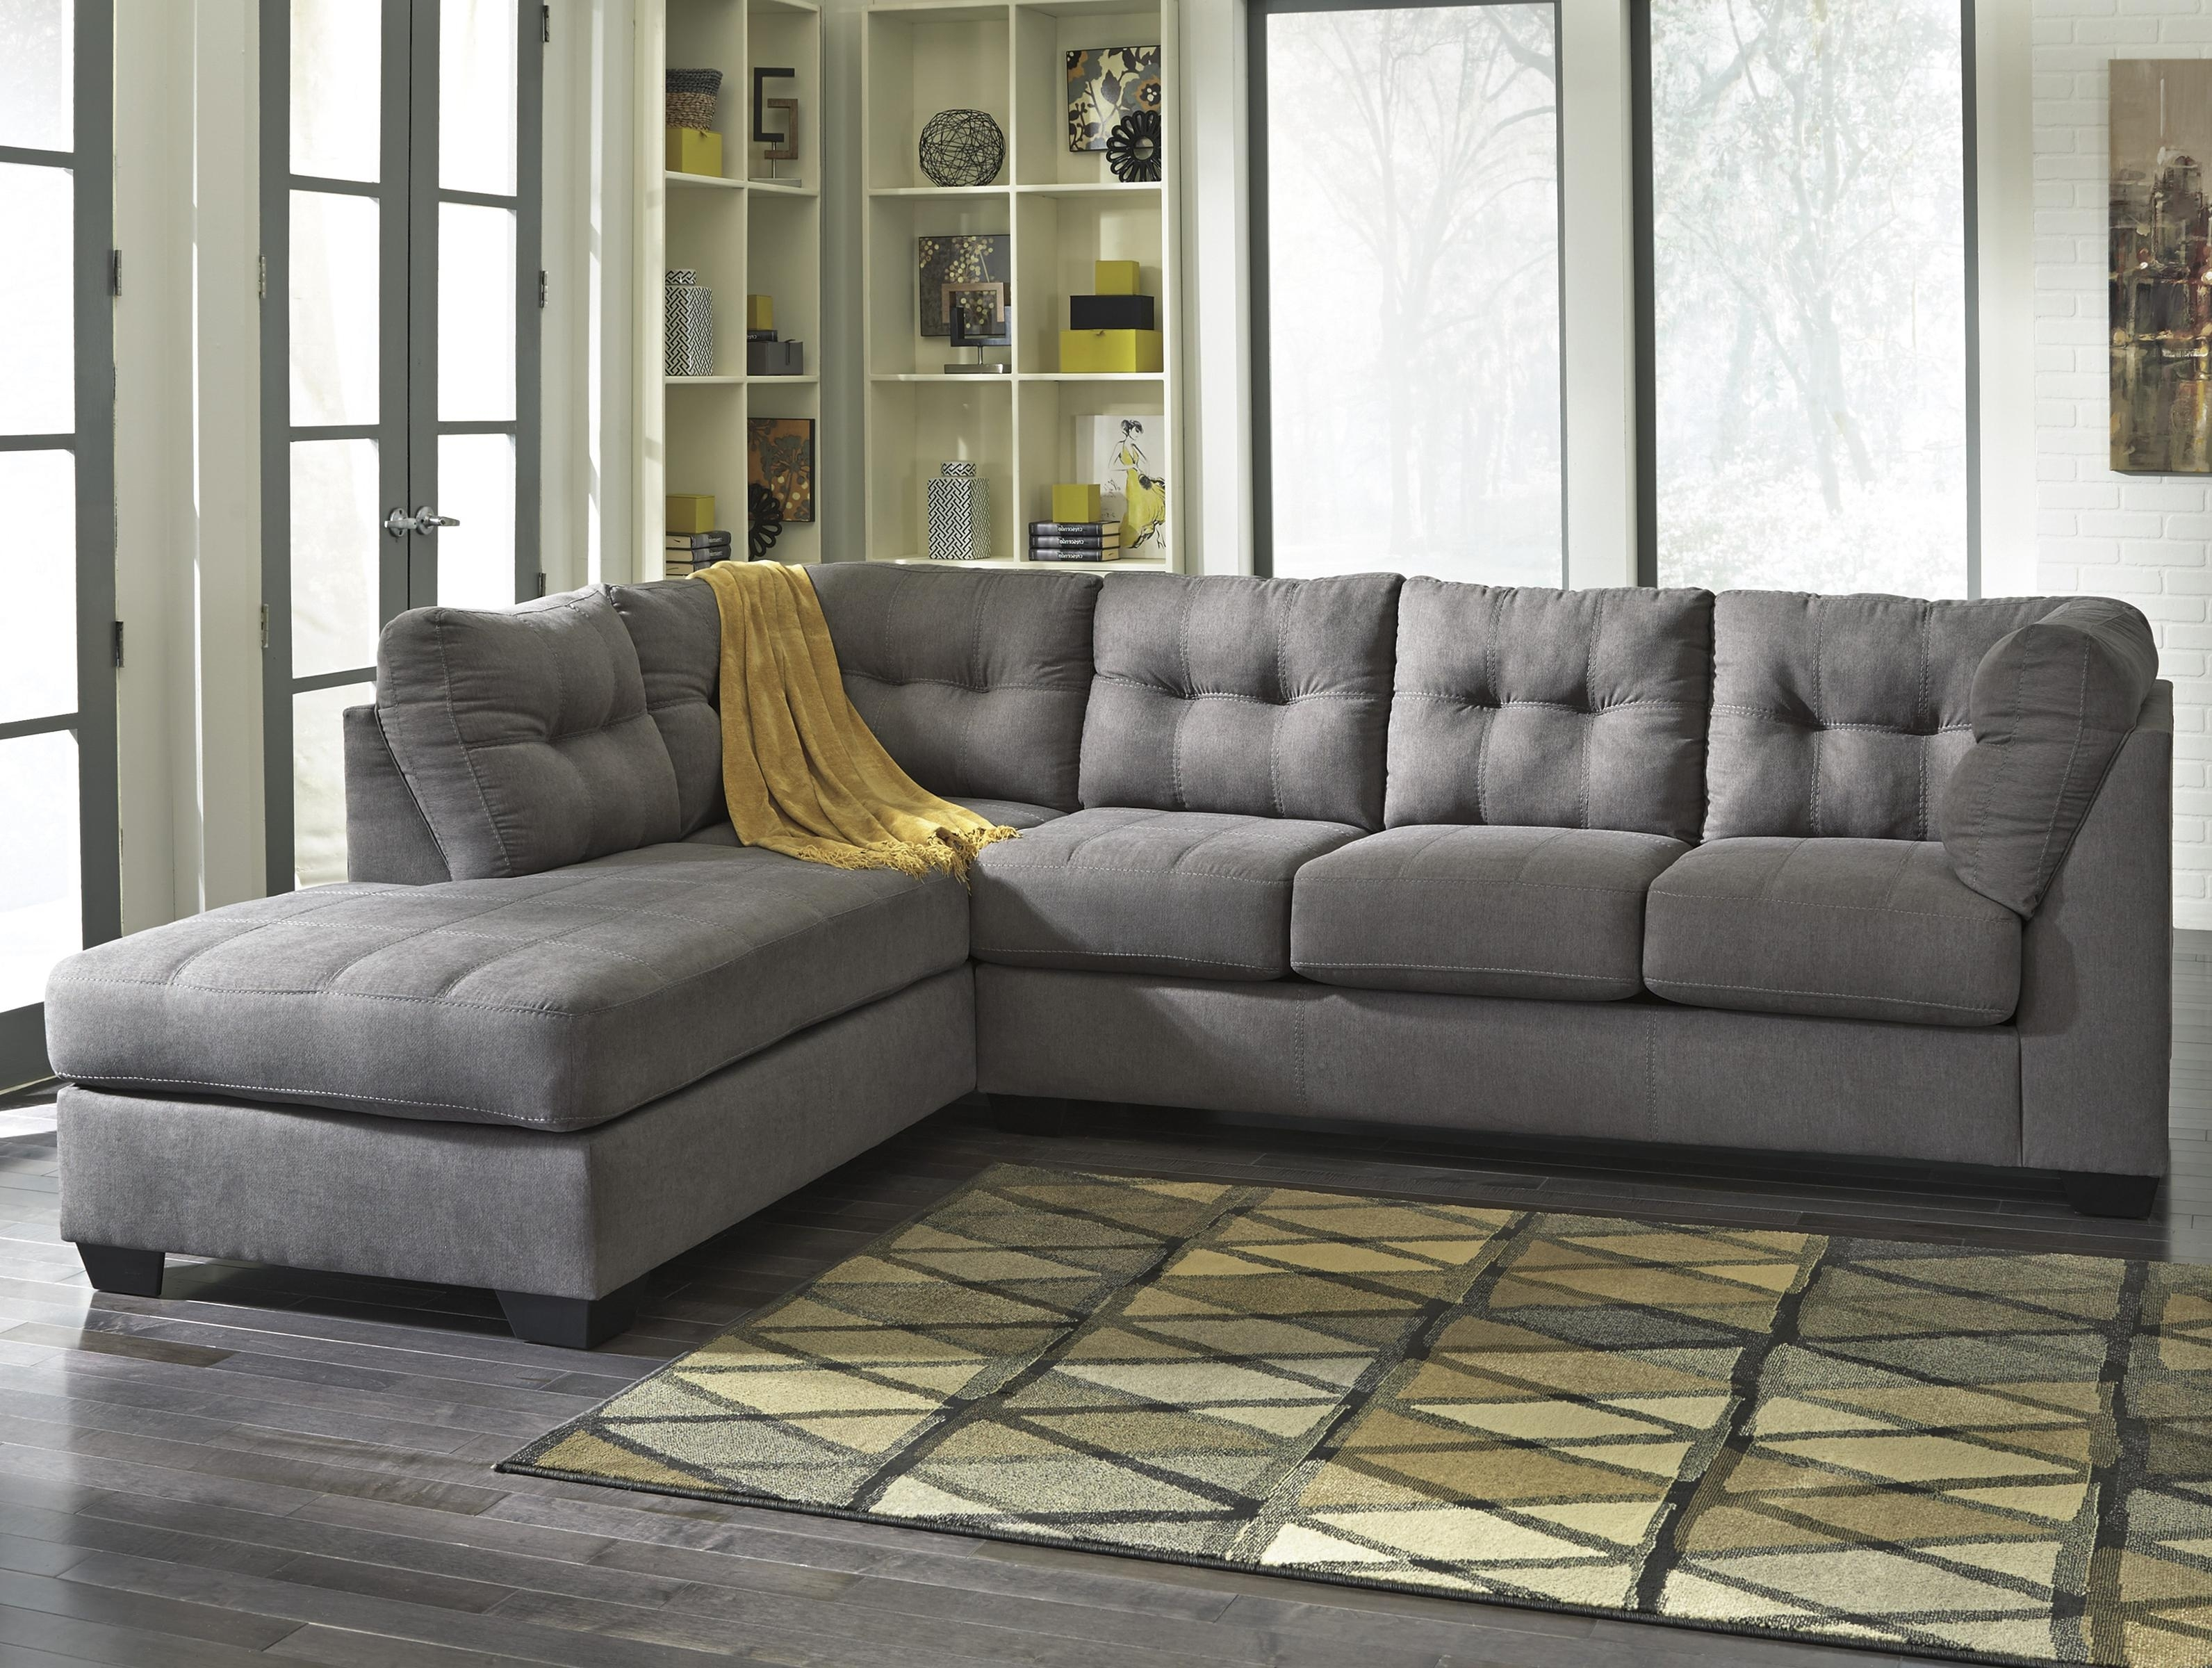 Choosing 2 Piece Sectional Sofa – Elites Home Decor Inside Delano 2 Piece Sectionals With Laf Oversized Chaise (View 11 of 30)